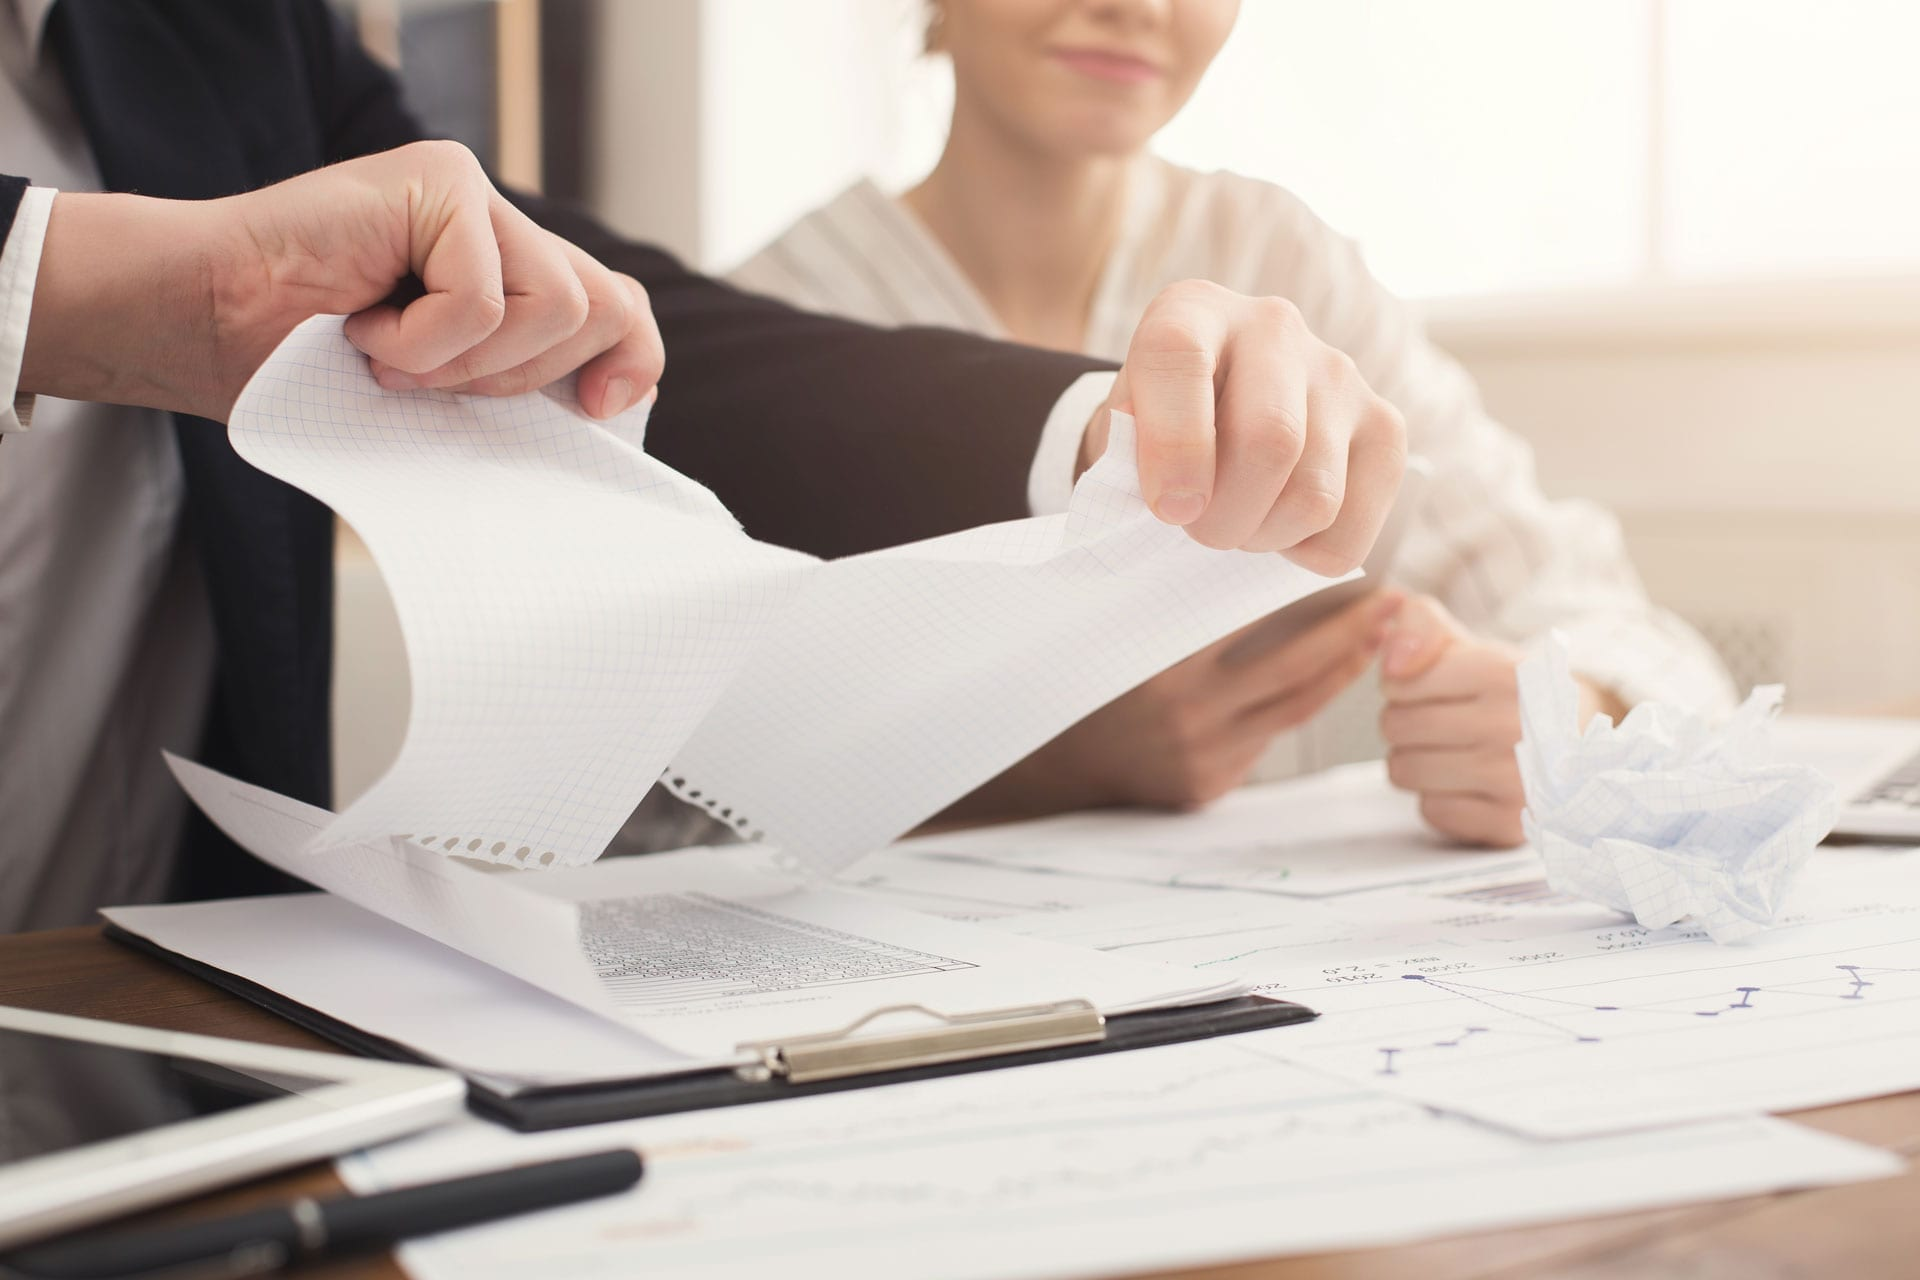 What You Need to Know about Cancelling a Licensing Agreement